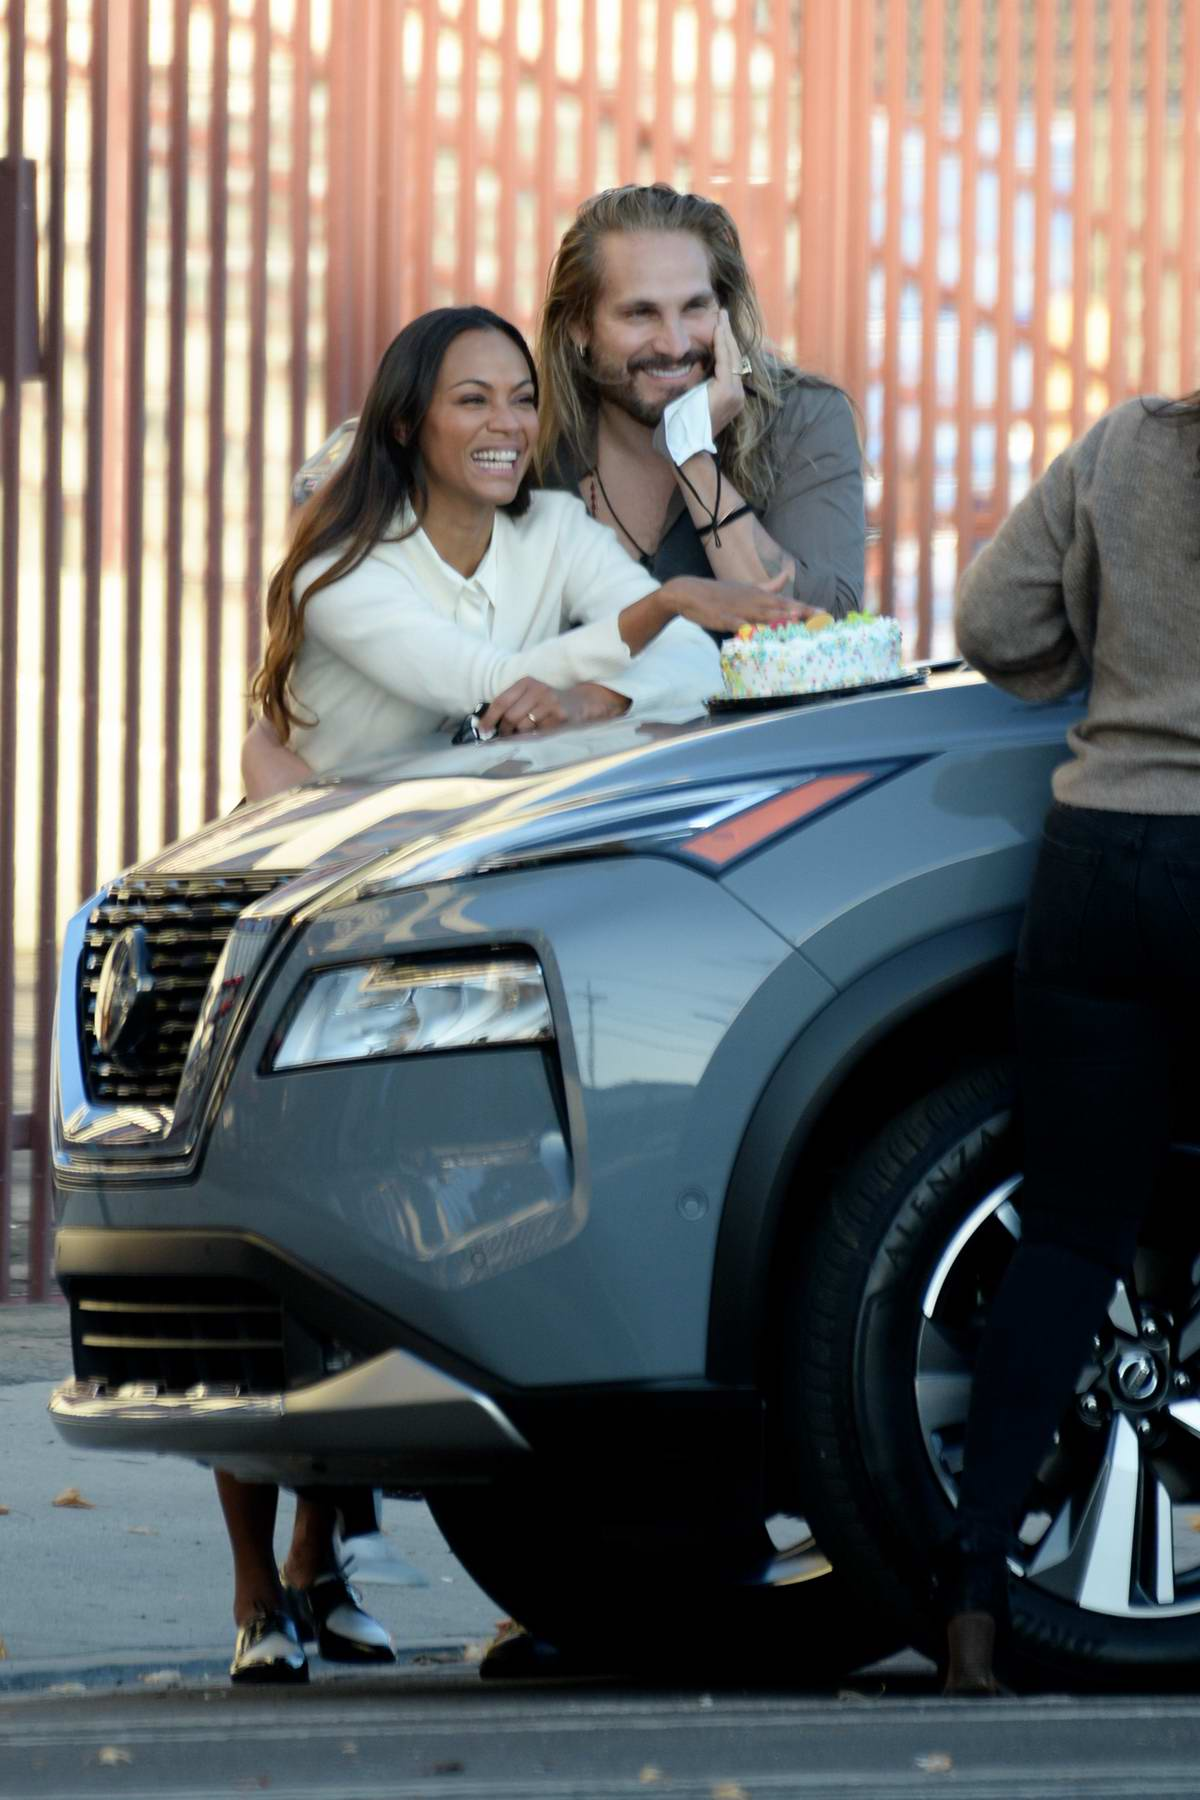 Zoe Saldana celebrates a COVID-19 style birthday with husband Marco Peregos and some friends in Los Angeles